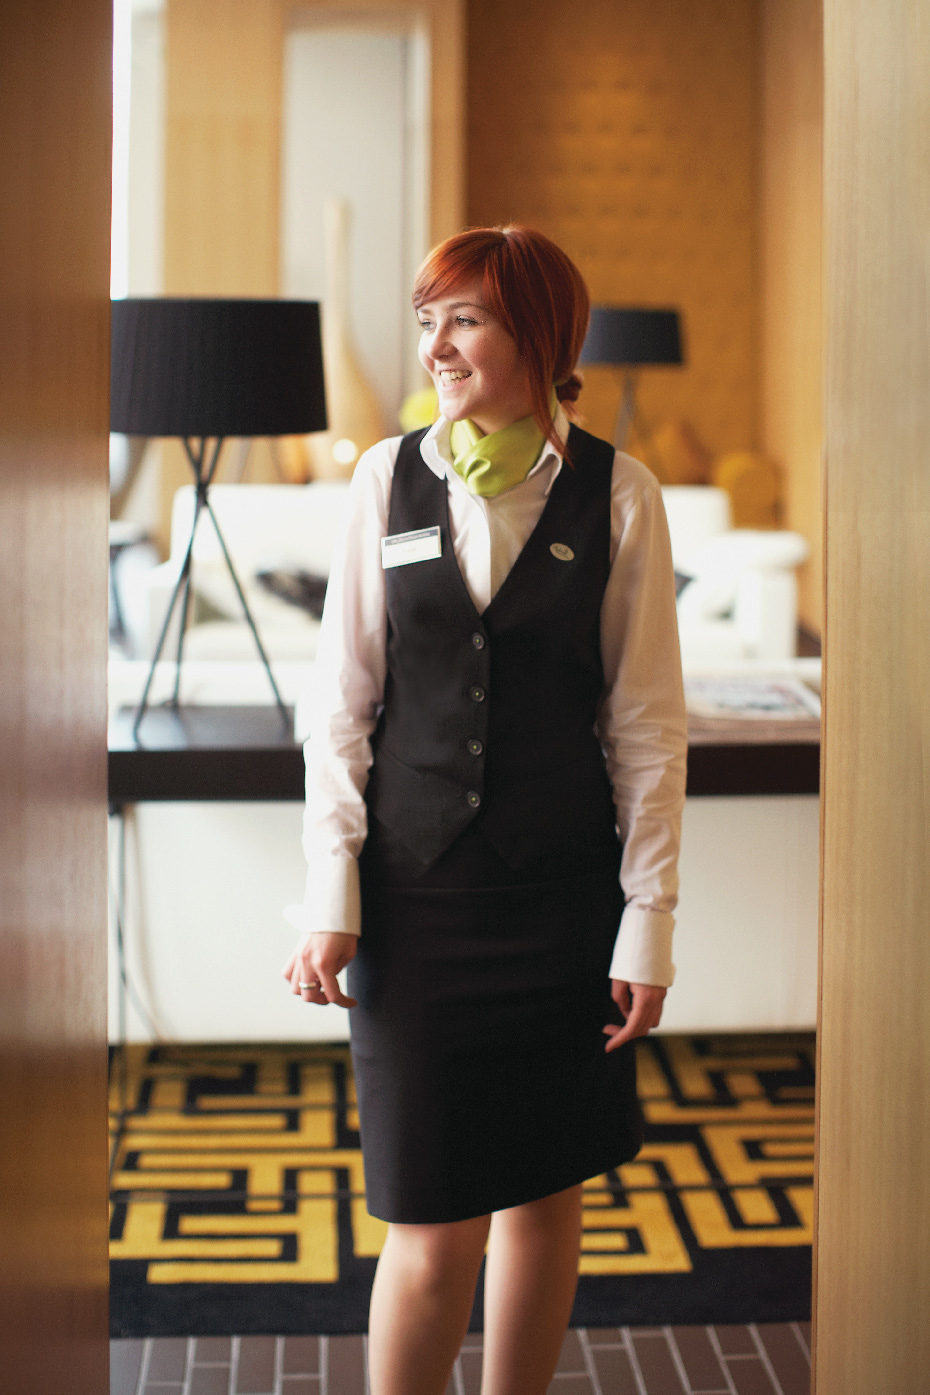 Stacey Van Berkel Photography I Beautiful Red Haired Girl in hotel lobby I Mustard + Black + White Decor